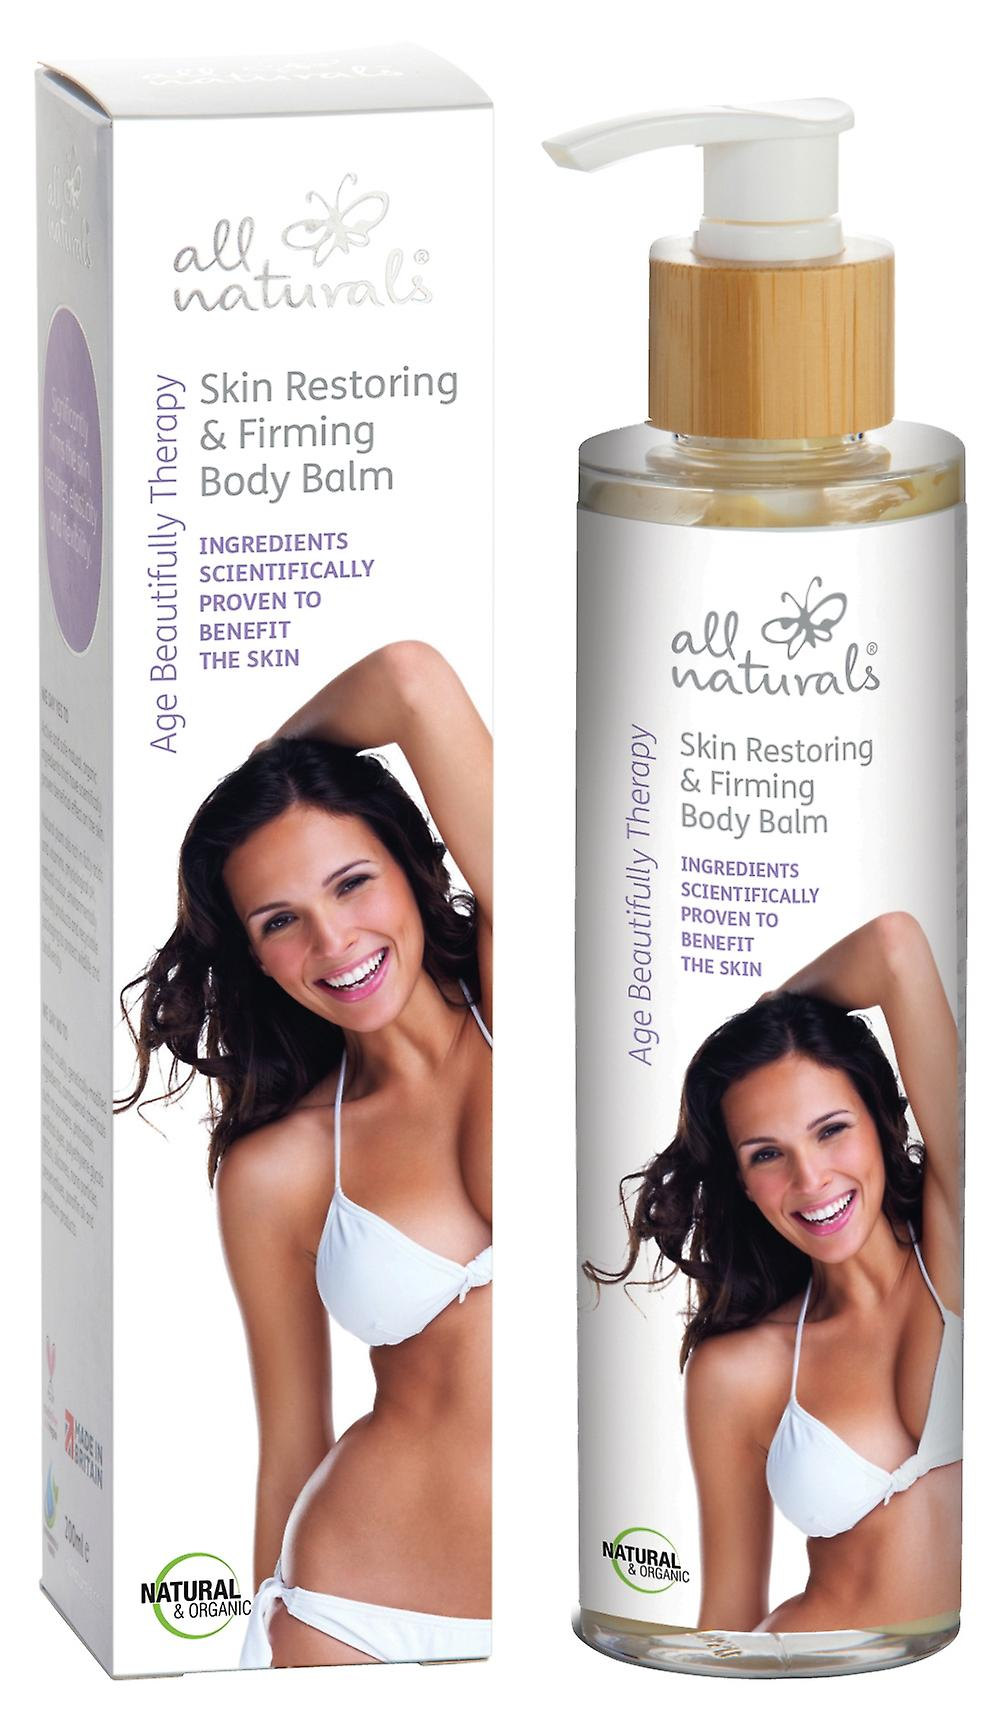 Organic Skin Restoring & Firming Body Balm. Age Beautifully Therapy. 200ml